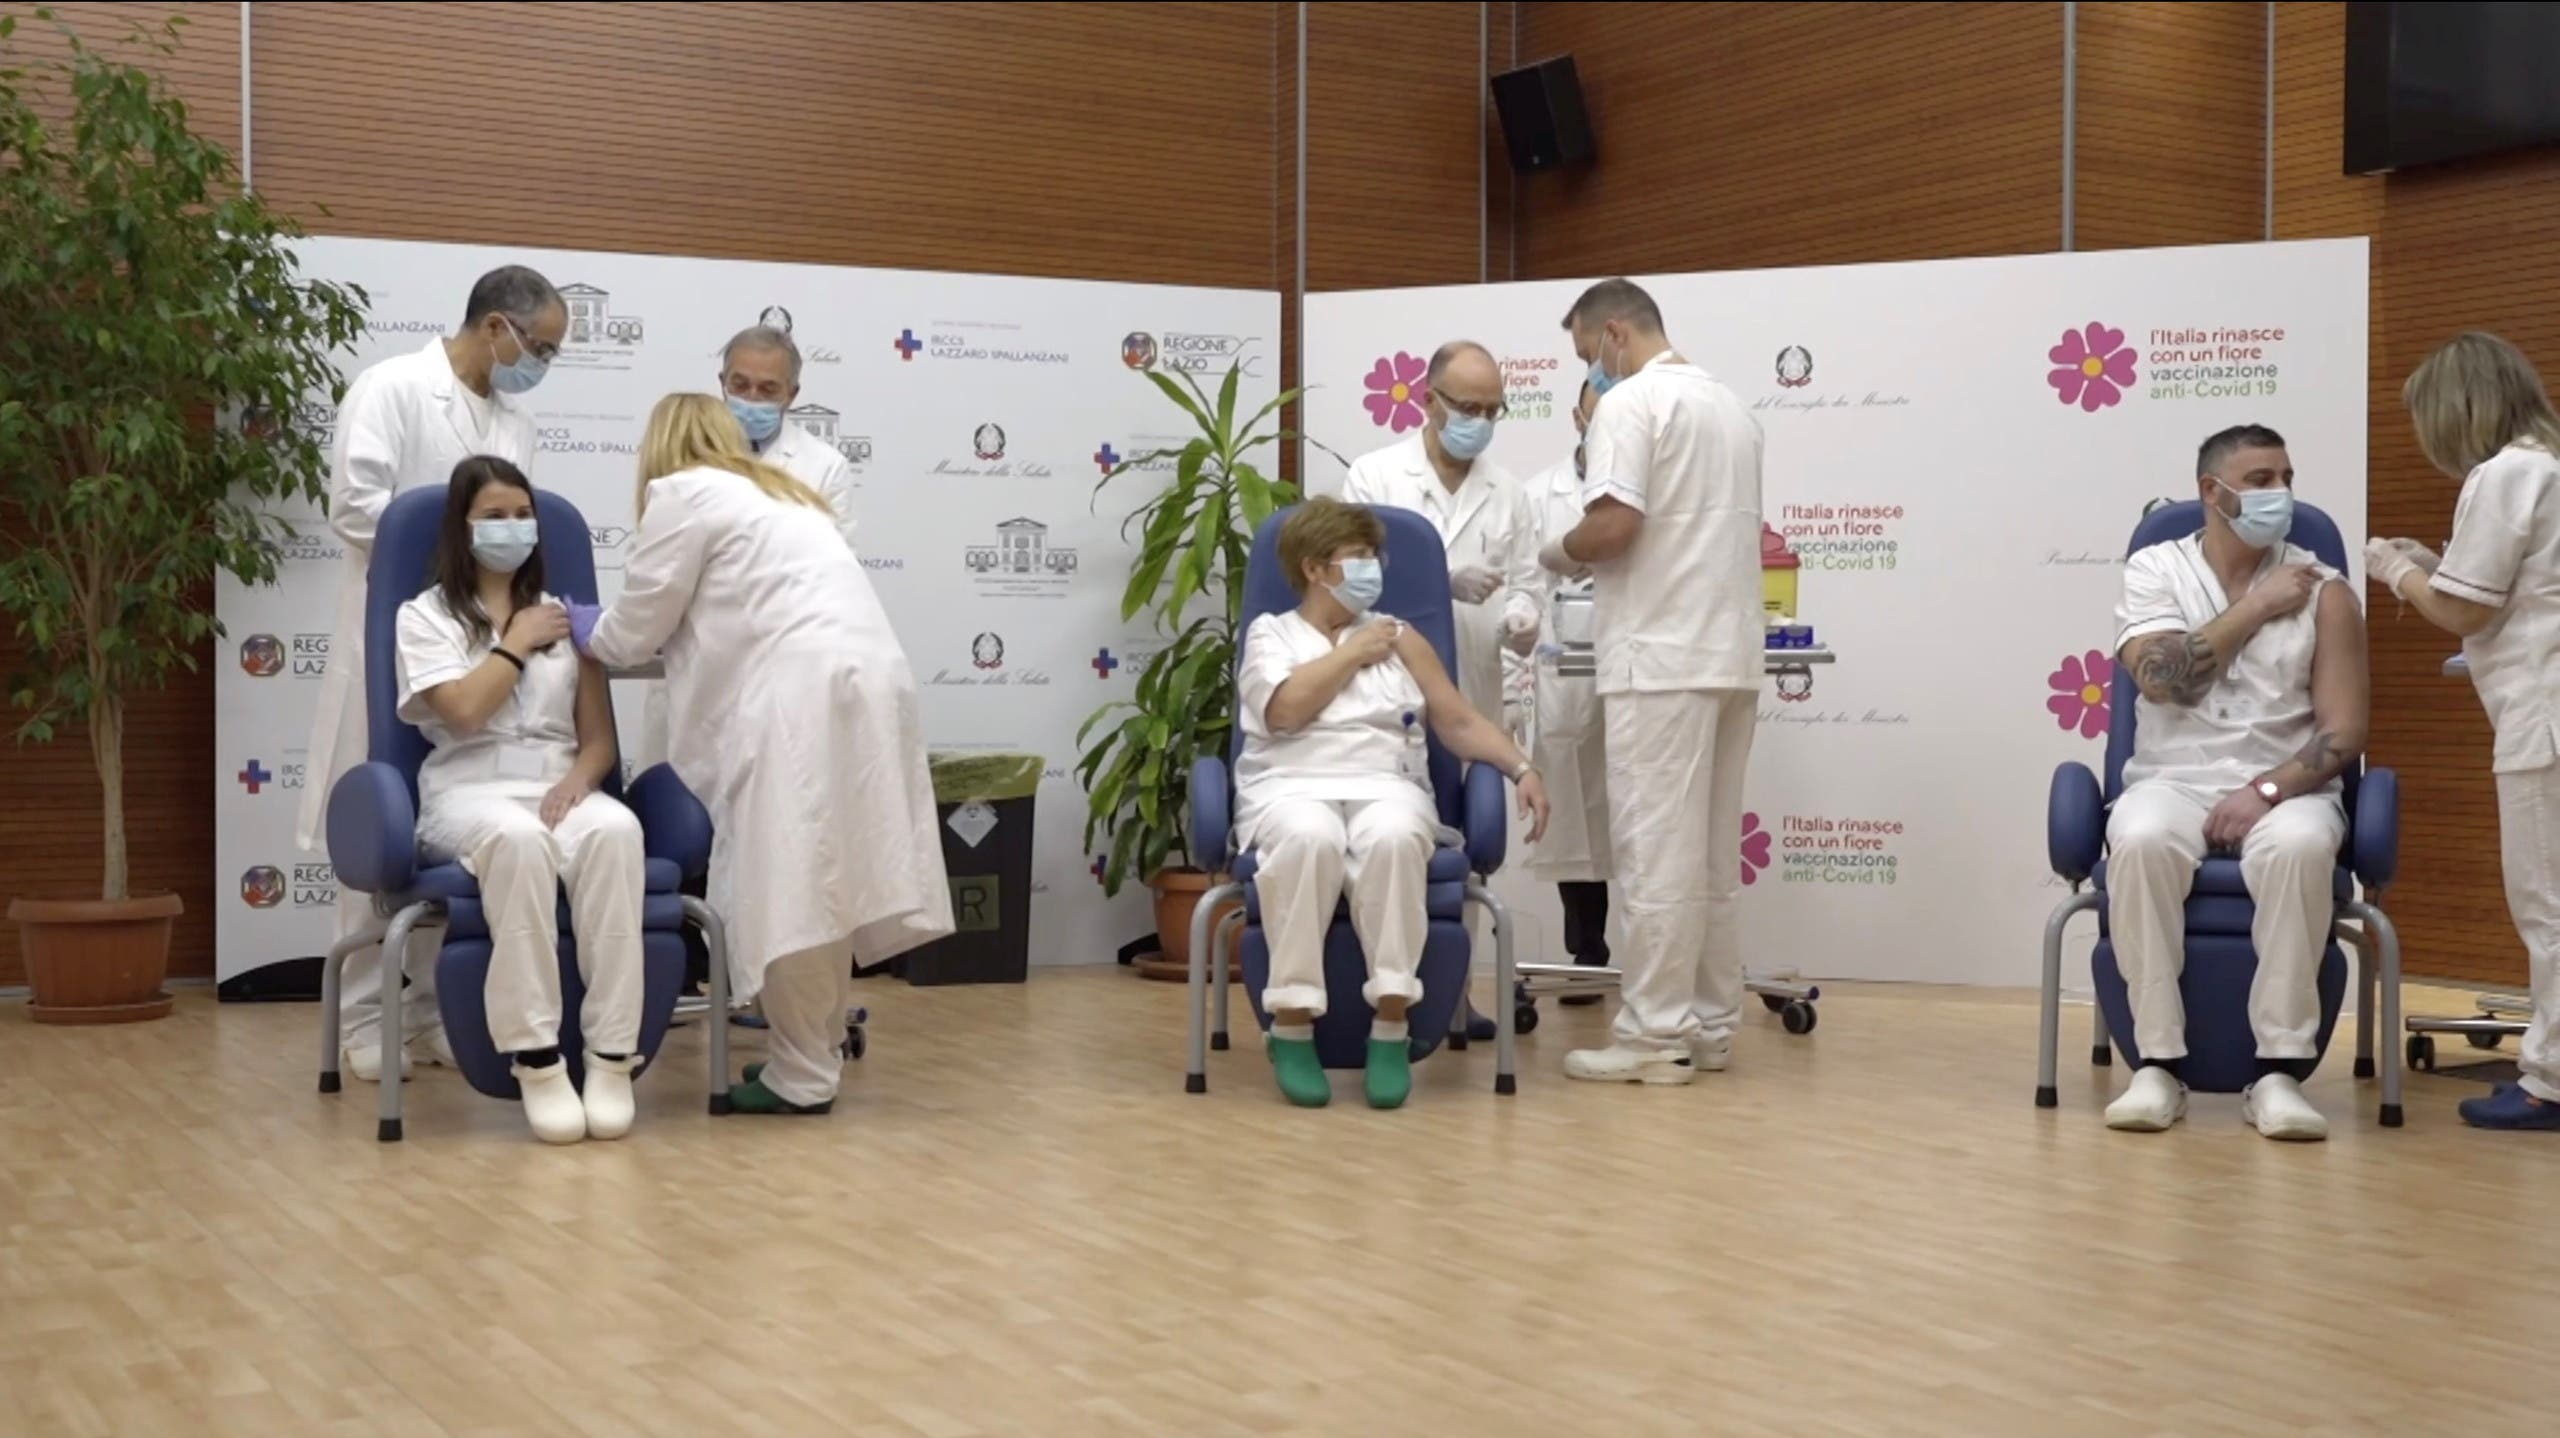 Claudia Alivernini, Maria Rosaria Capobianchi and Omar Altobelli, the first three recipients of Pfizer/BioNTech COVID-19 vaccine in Italy, receives their vaccination at the Spallanzani hospital in this screengrab taken from a video, in Rome, Italy December 27, 2020. (Ministero della Salute via Reuters)